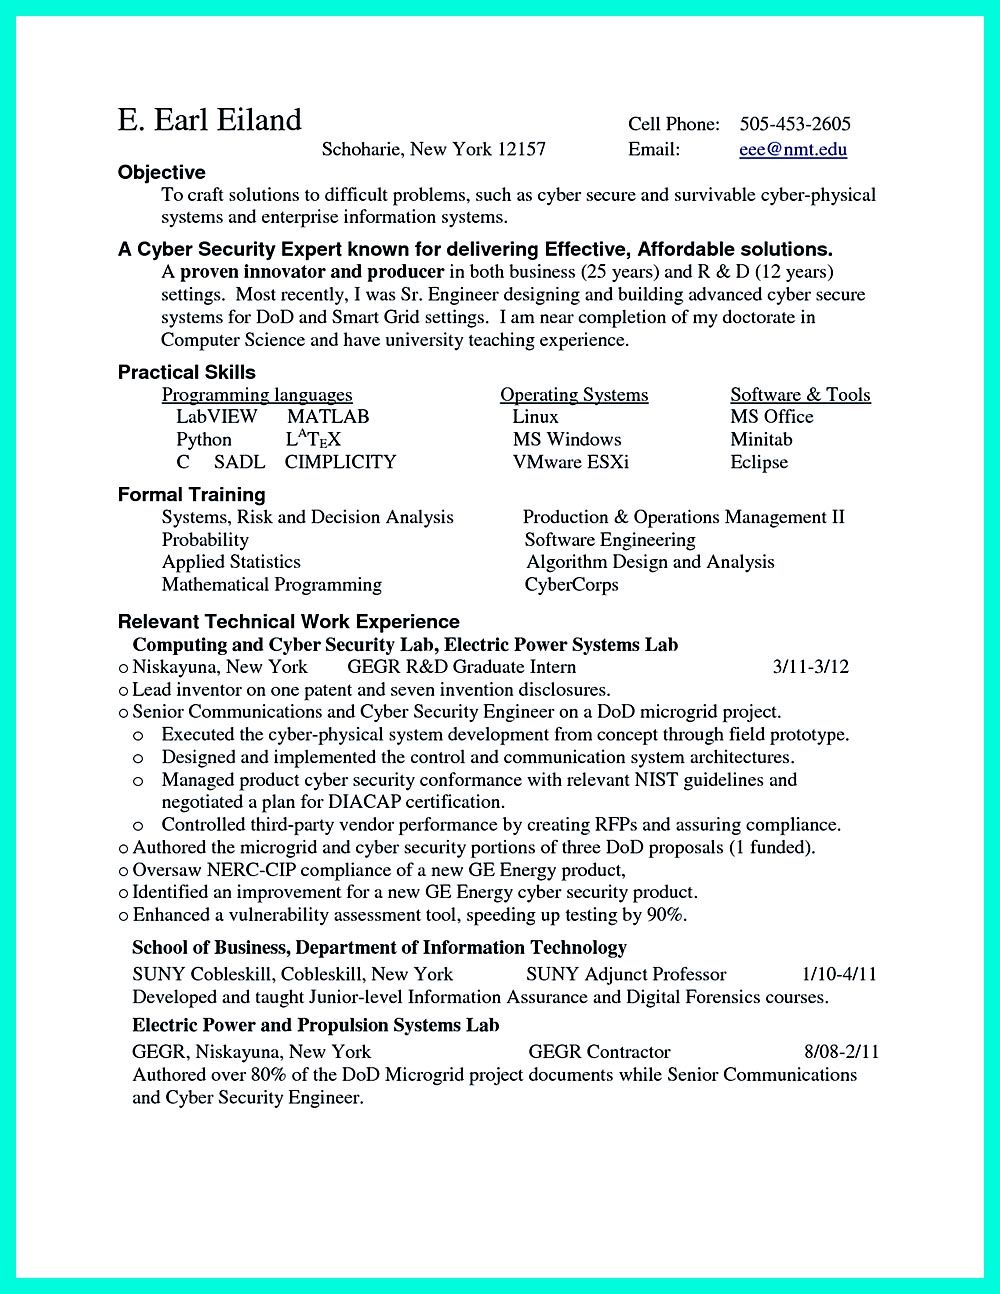 cyber security resume must be well created to get the job position cyber security resume must be well created to get the job position as what you want